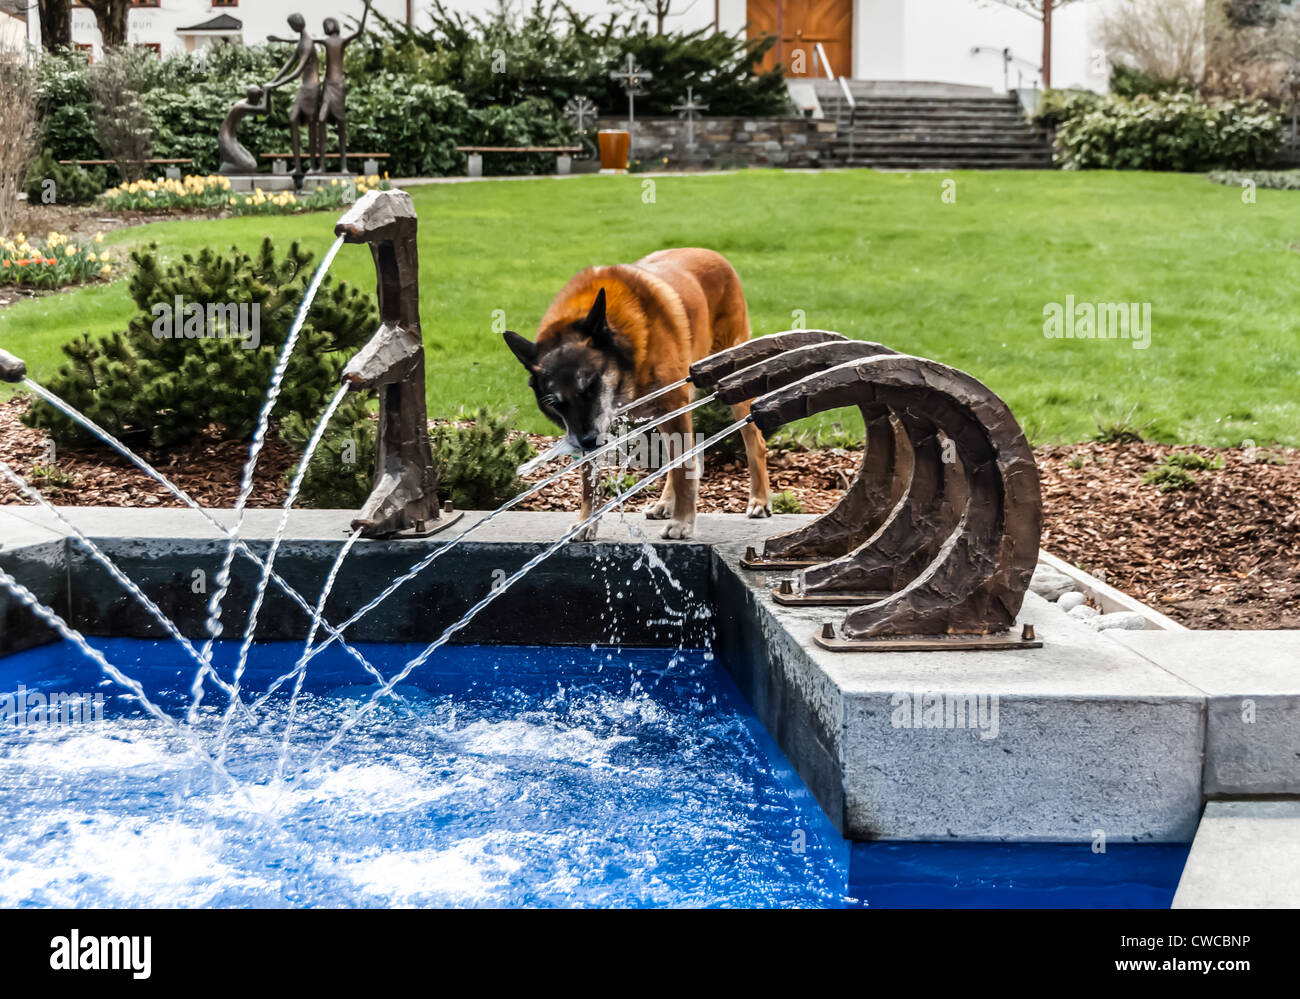 A dog drinking from a fountain - Stock Image